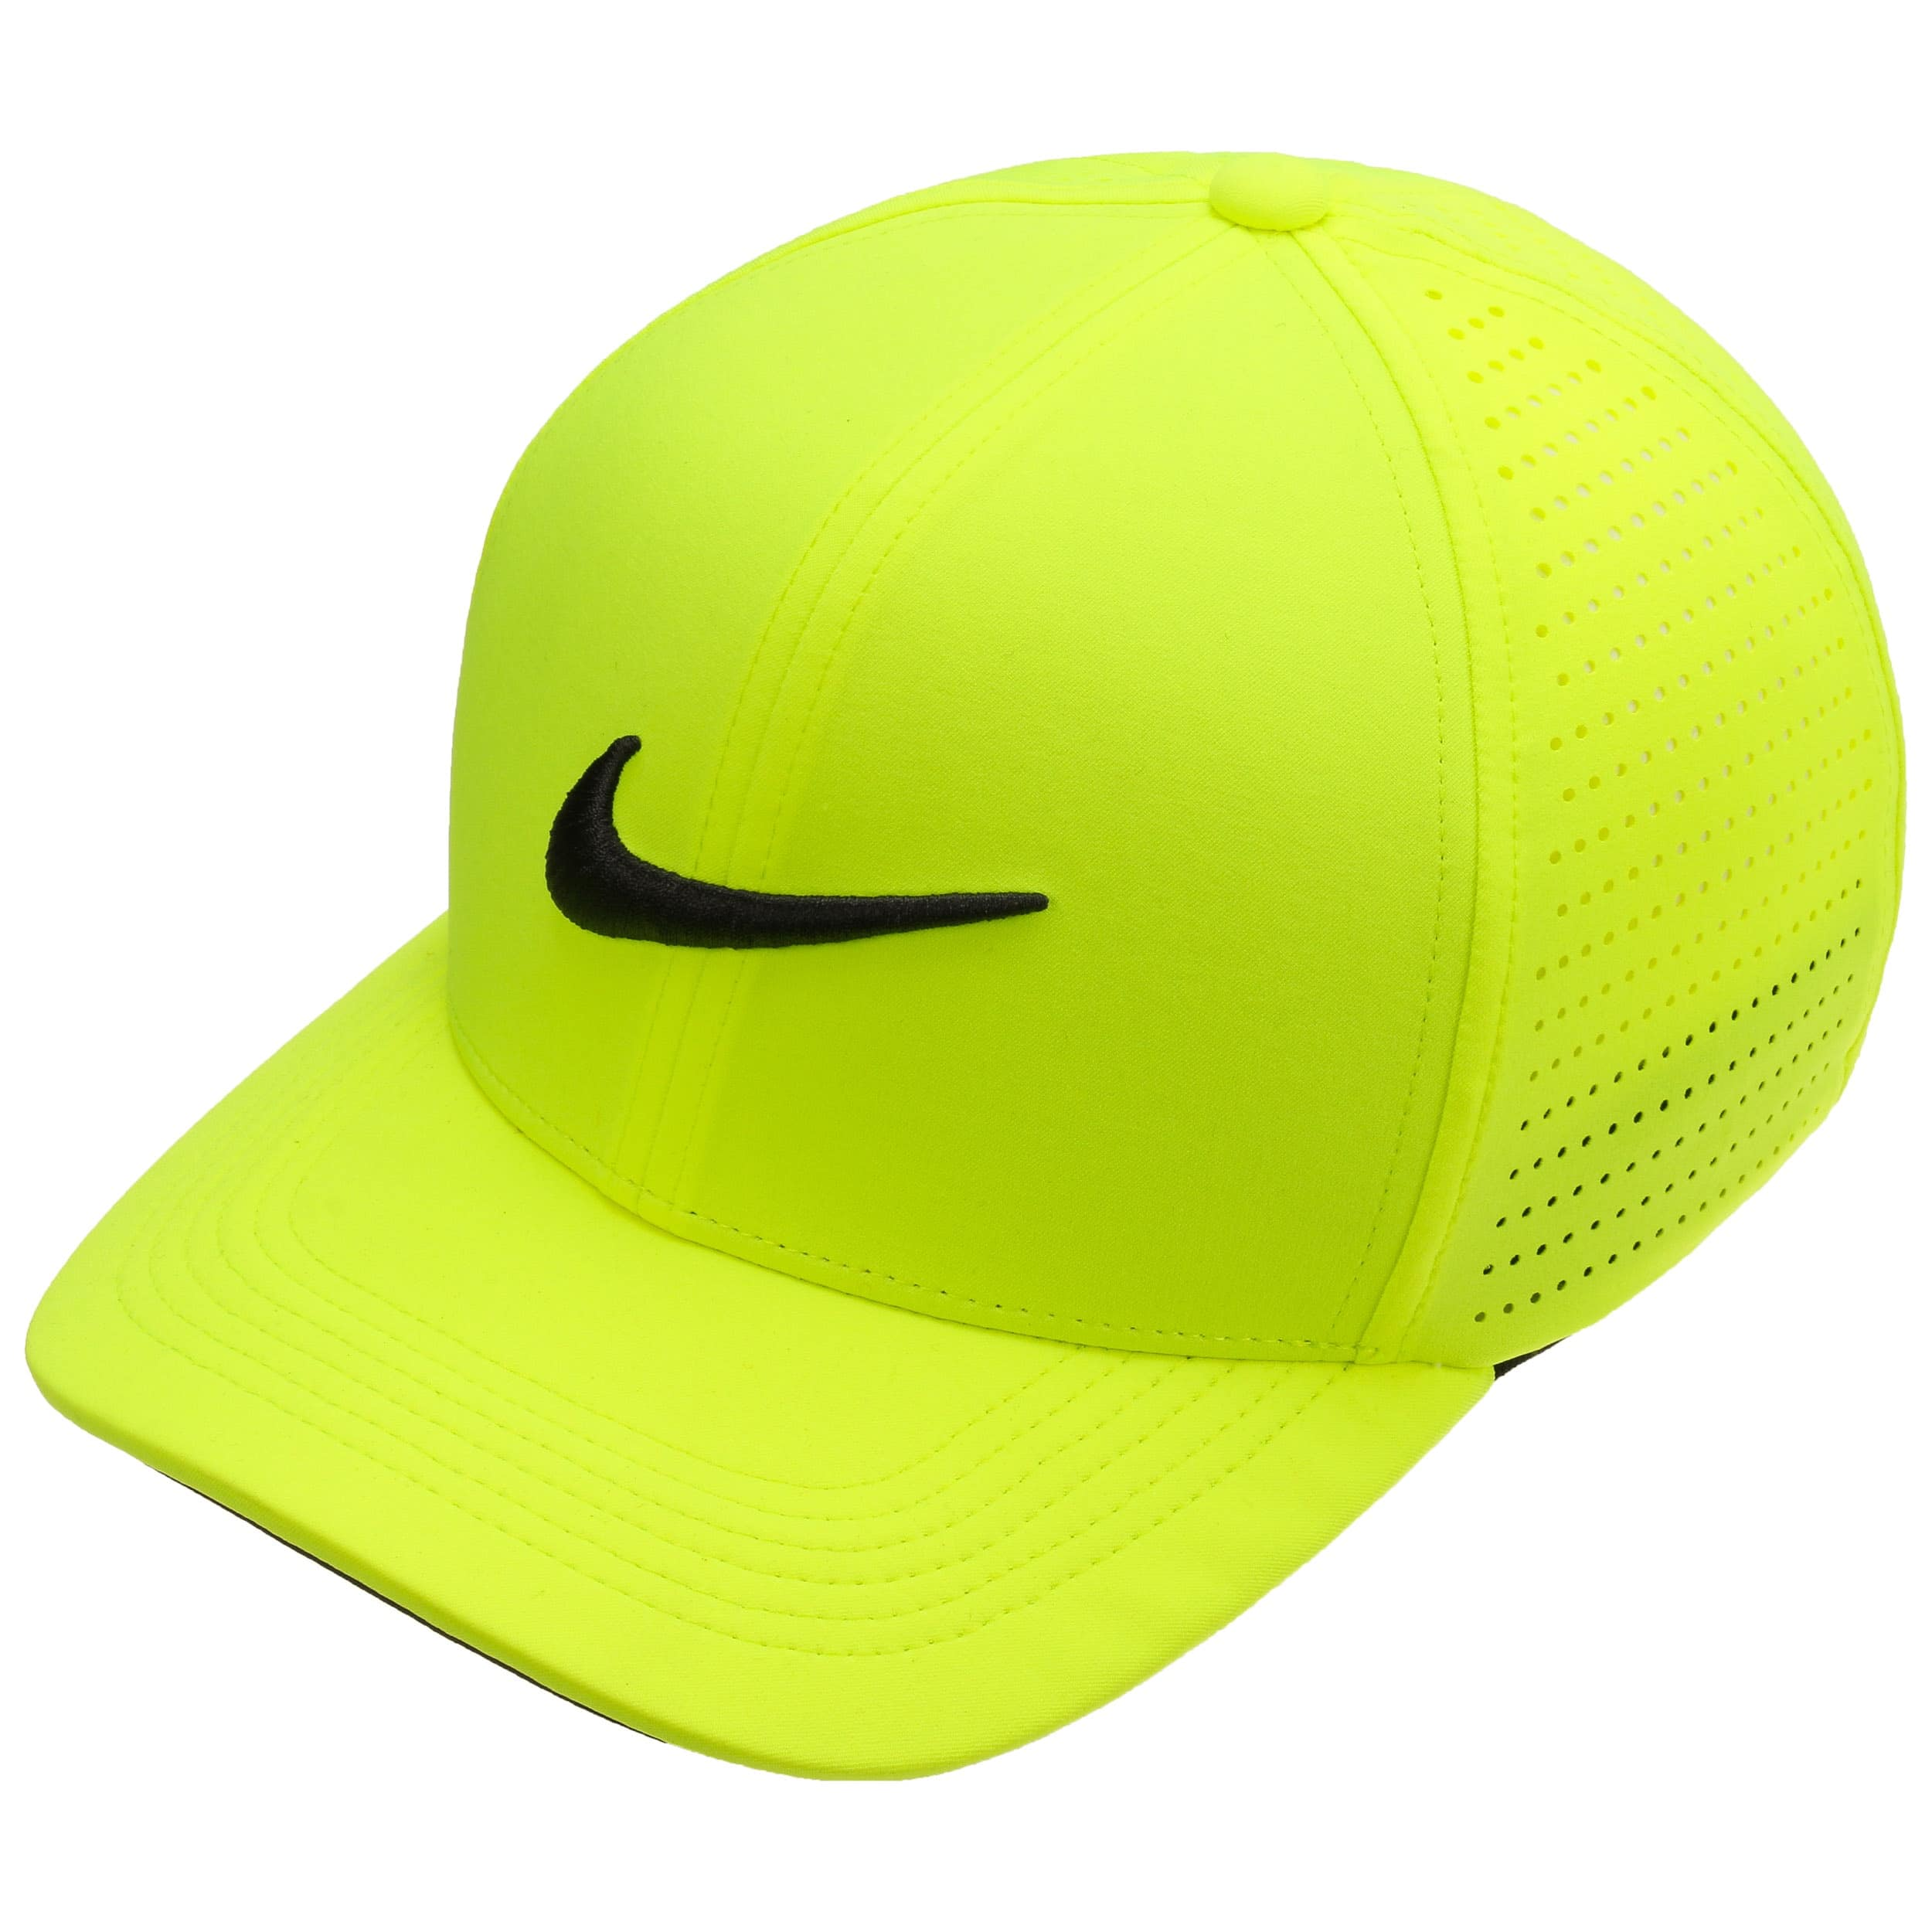 ... Golf Classic 99 Baseball Cap by Nike - bianco 1 ... 27cb69df6613